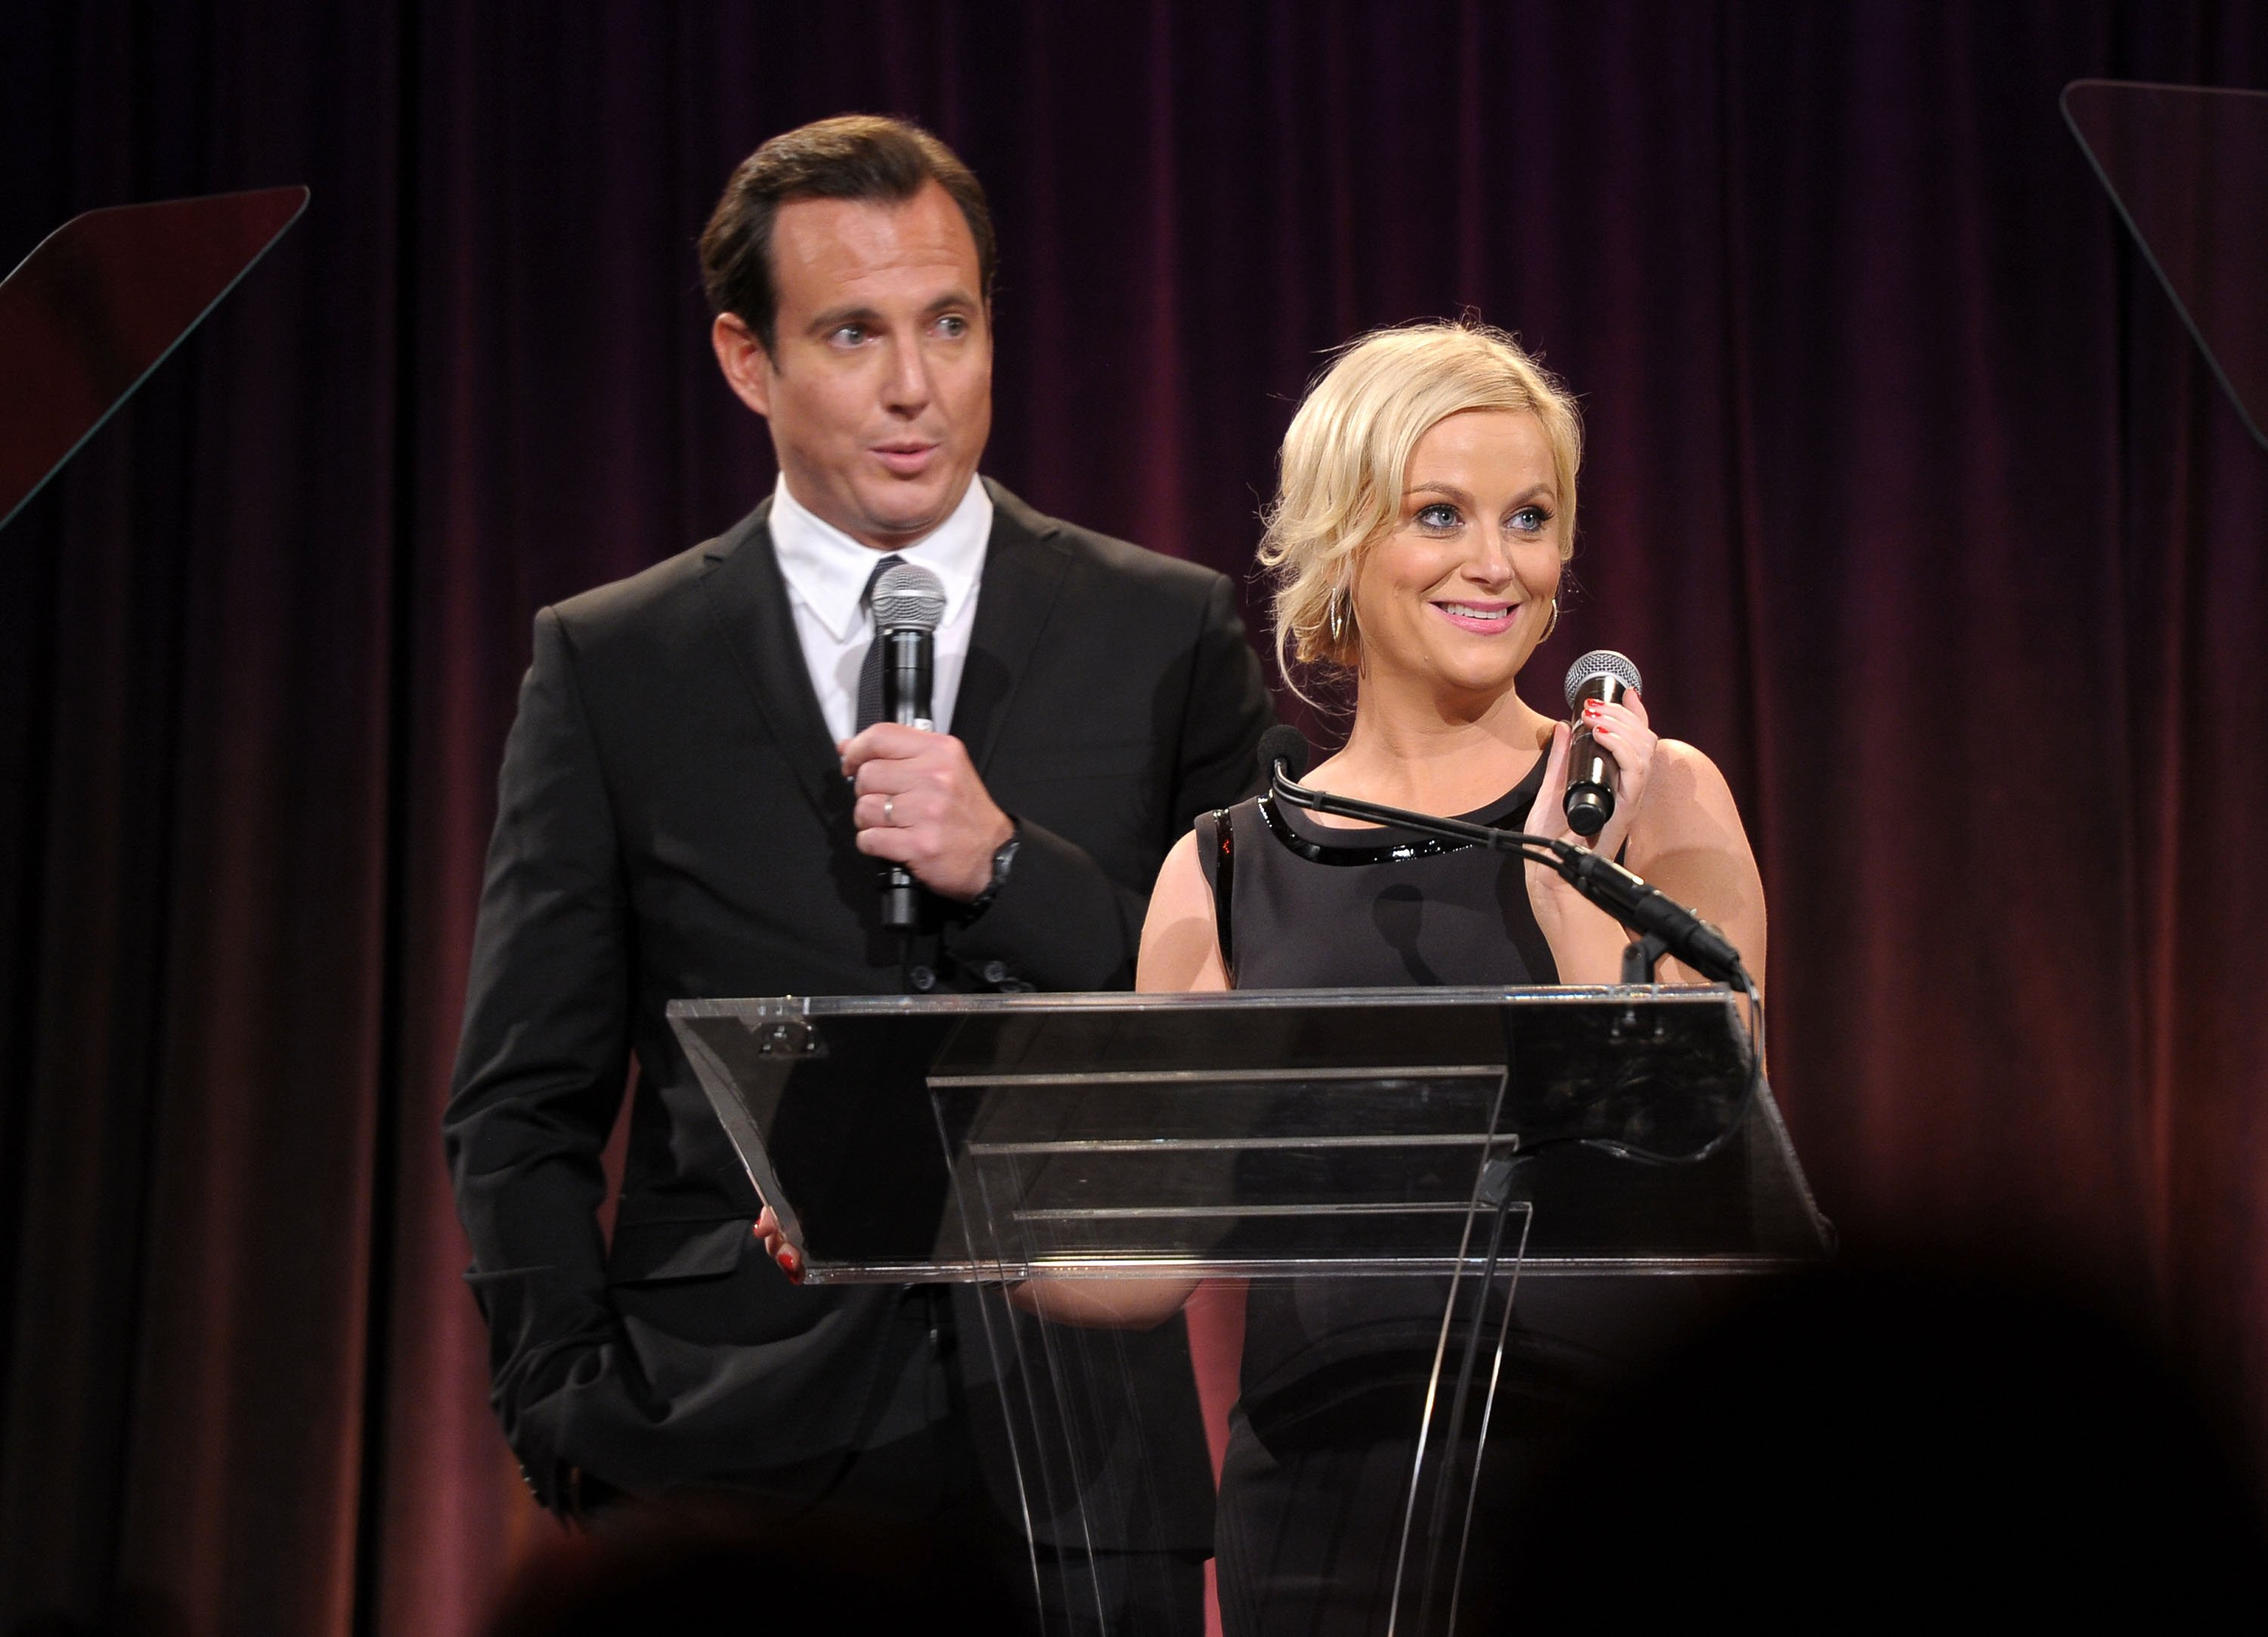 Will Arnett and Amy Poehler speak during the Worldwide Orphans Foundation's Seventh Annual Benefit Gala hosted by Amy Poehler and Will Arnett held at Cipriani Wall Street on November 14, 2011 in New York City. | Photo: GettyImages